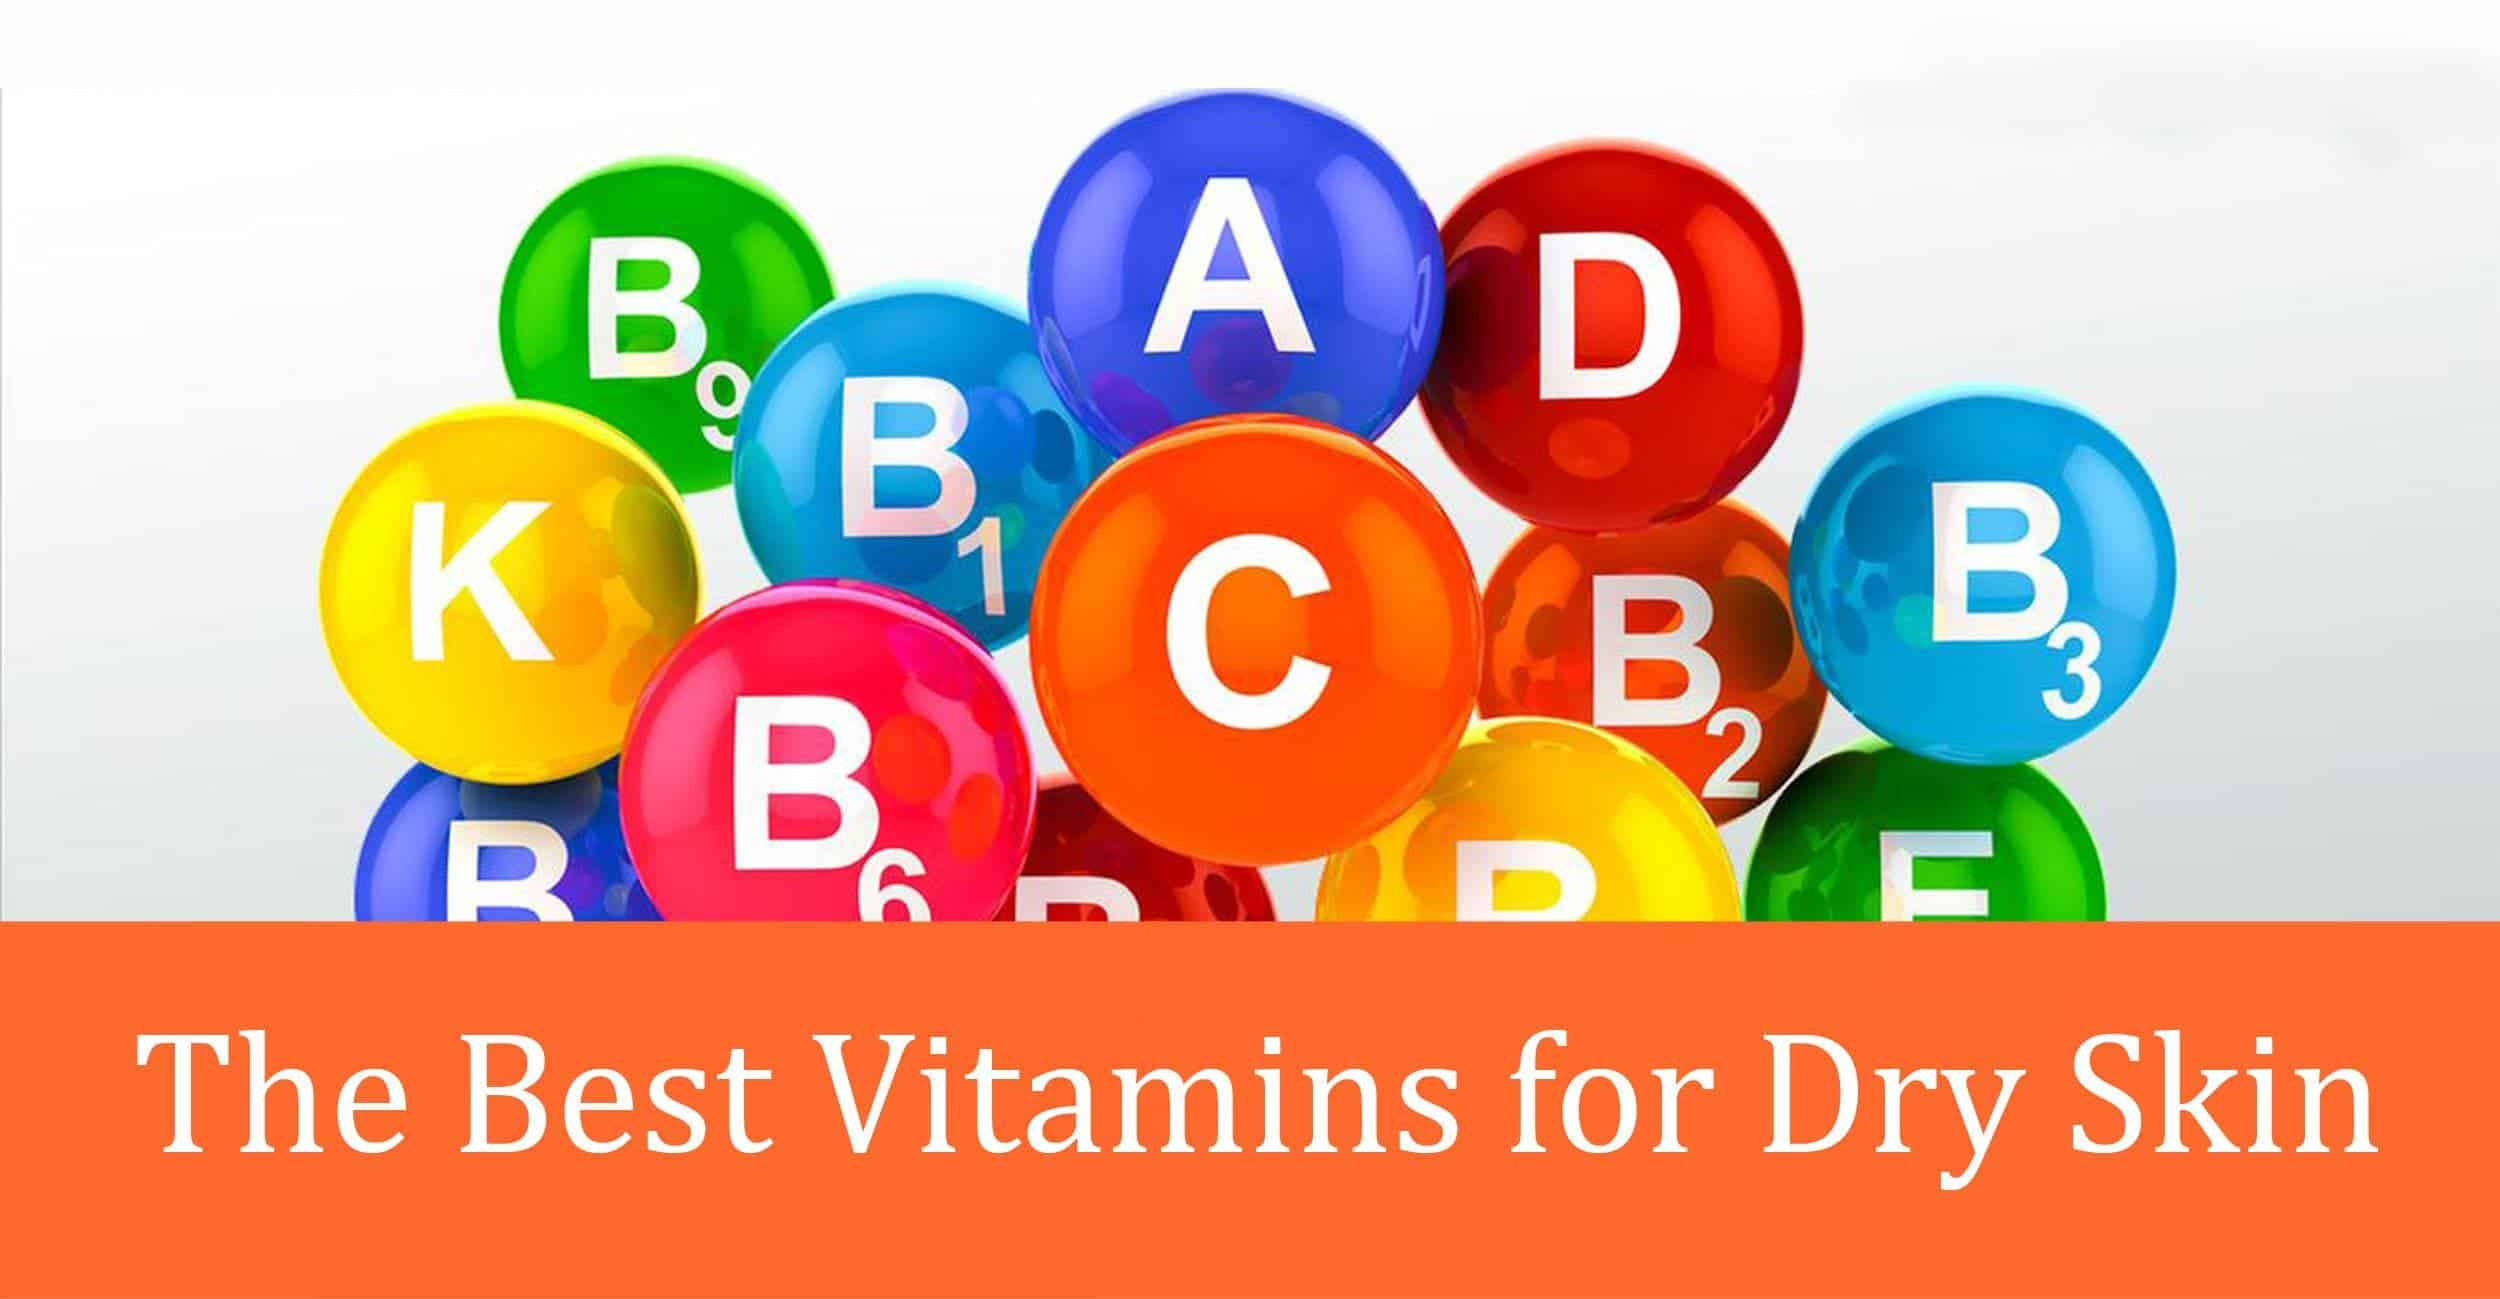 The Best Vitamins for Dry Skin – 2021 Reviews and Top Picks